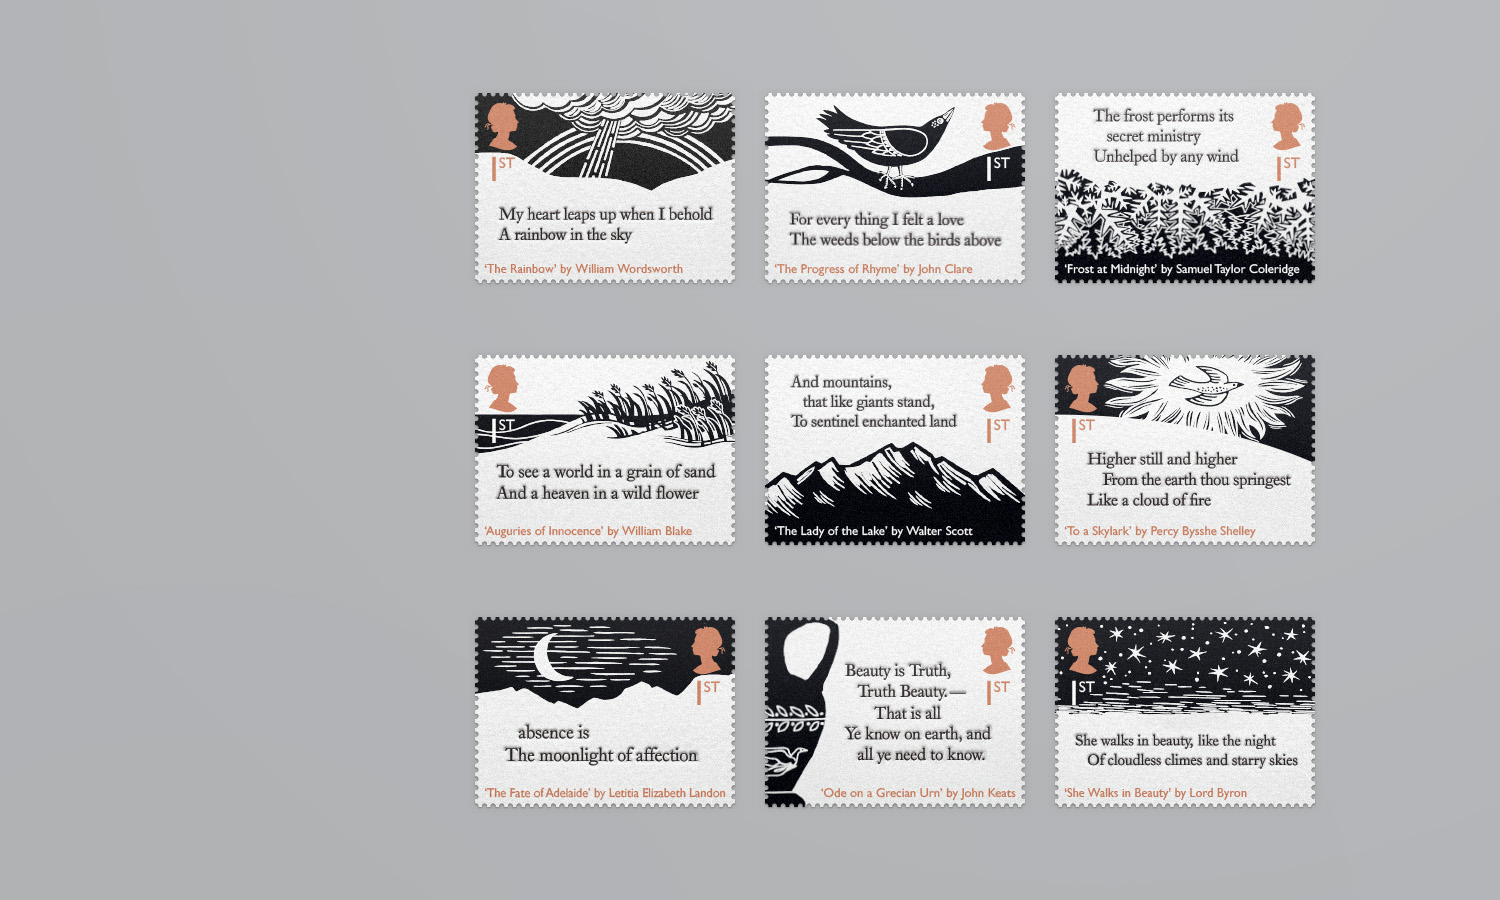 Royal Mail Poetic Stamp Designs